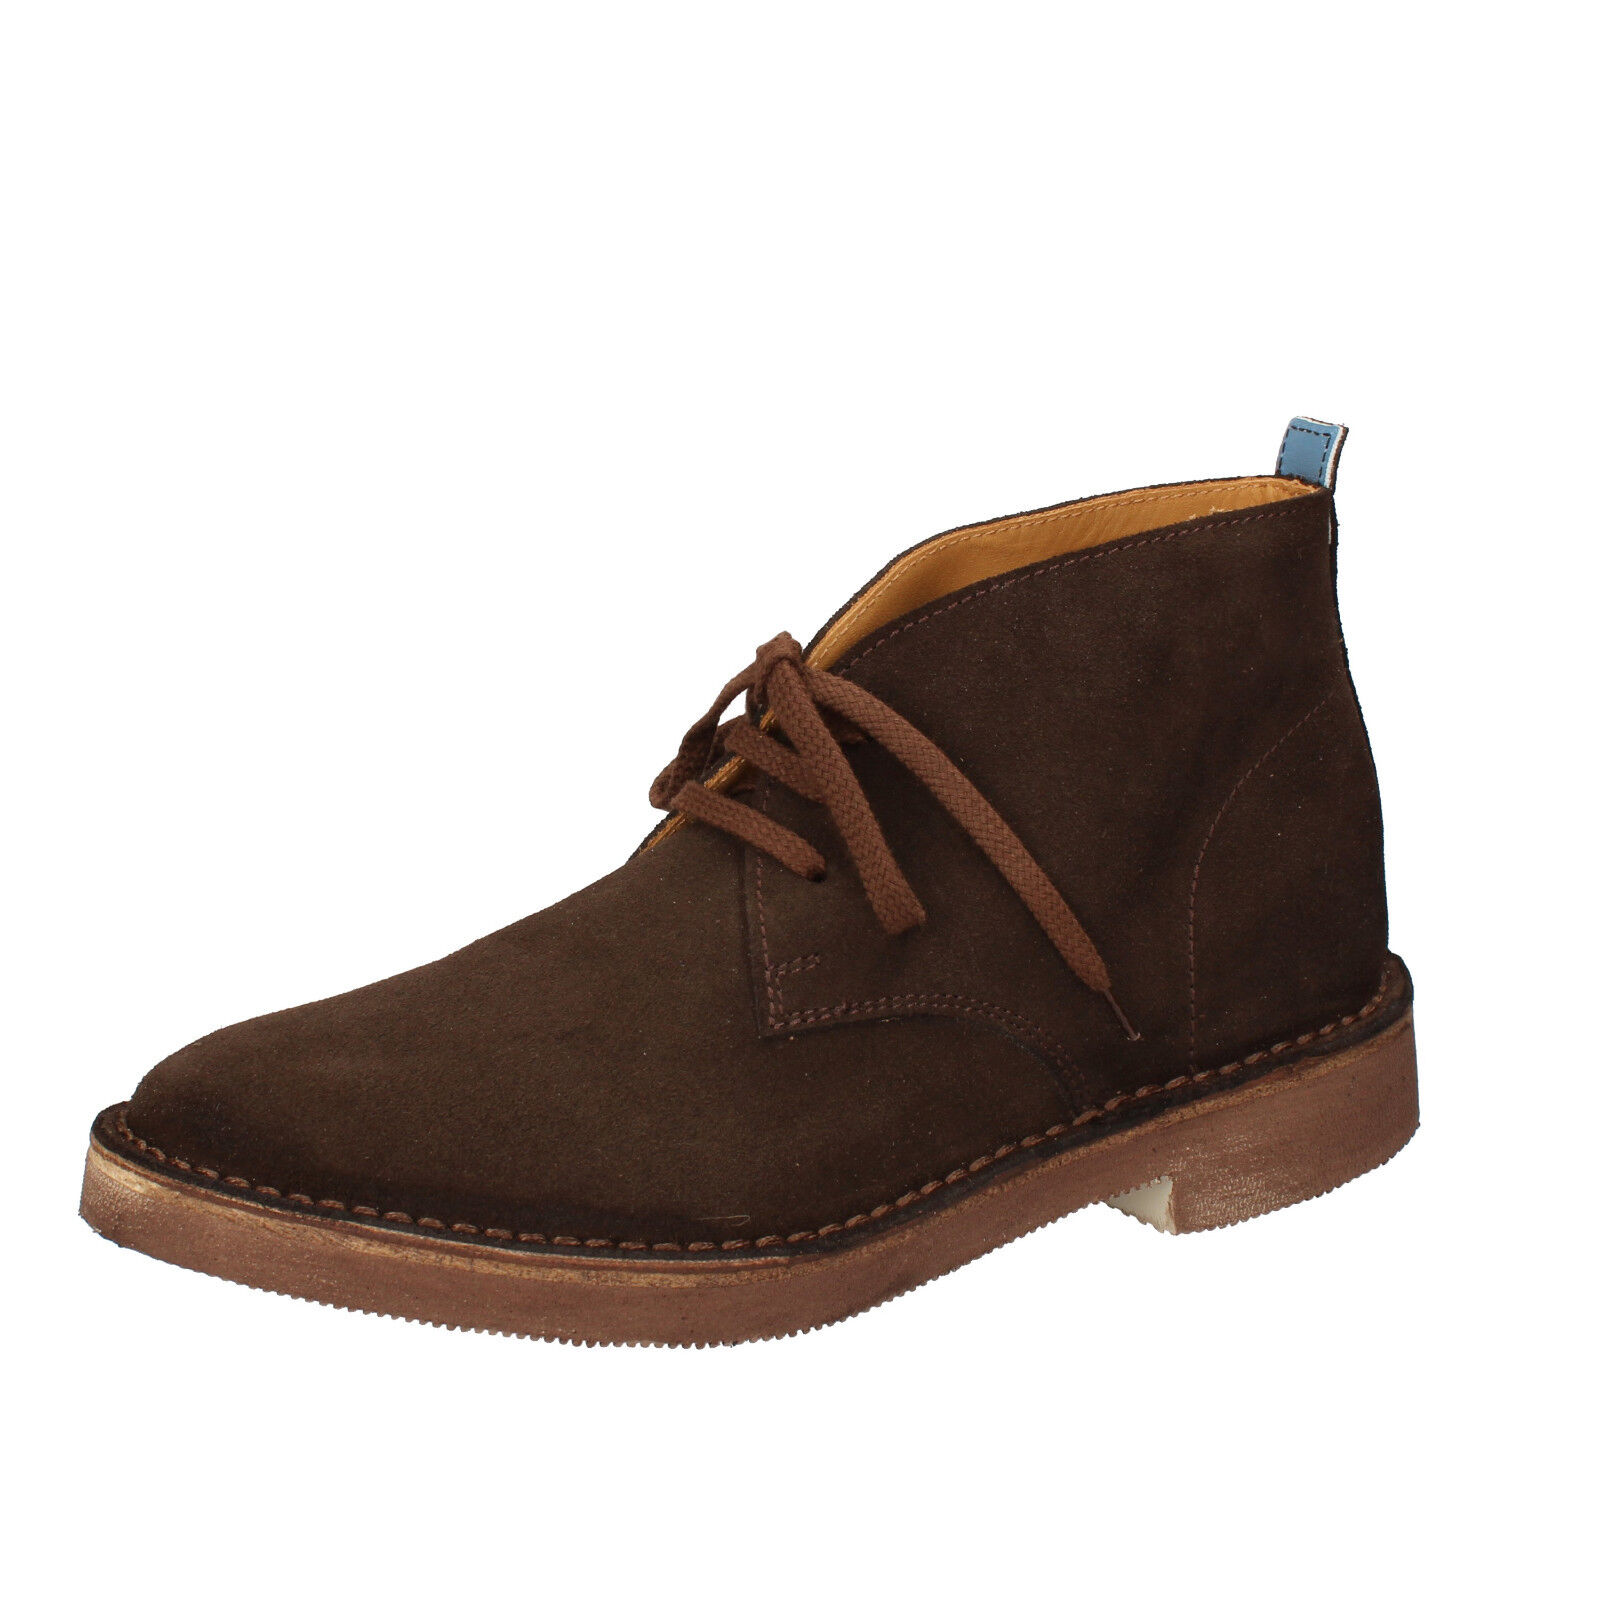 mens shoes MOMA () 11 () MOMA desert boots brown suede AB330-H 6319c4